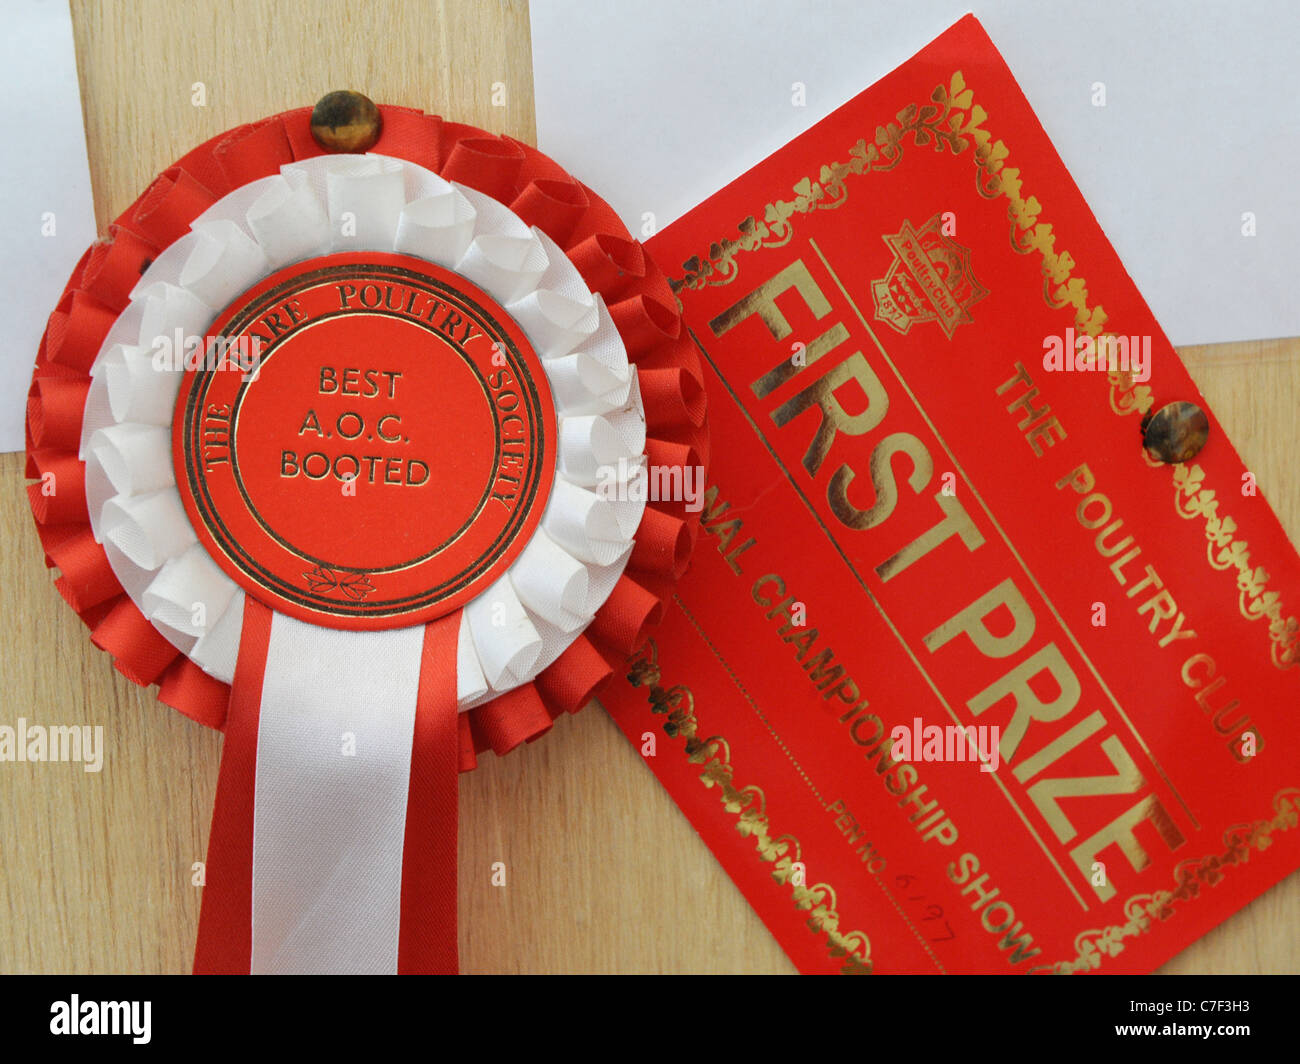 A certificate and rosette from the rare poultry society - Stock Image